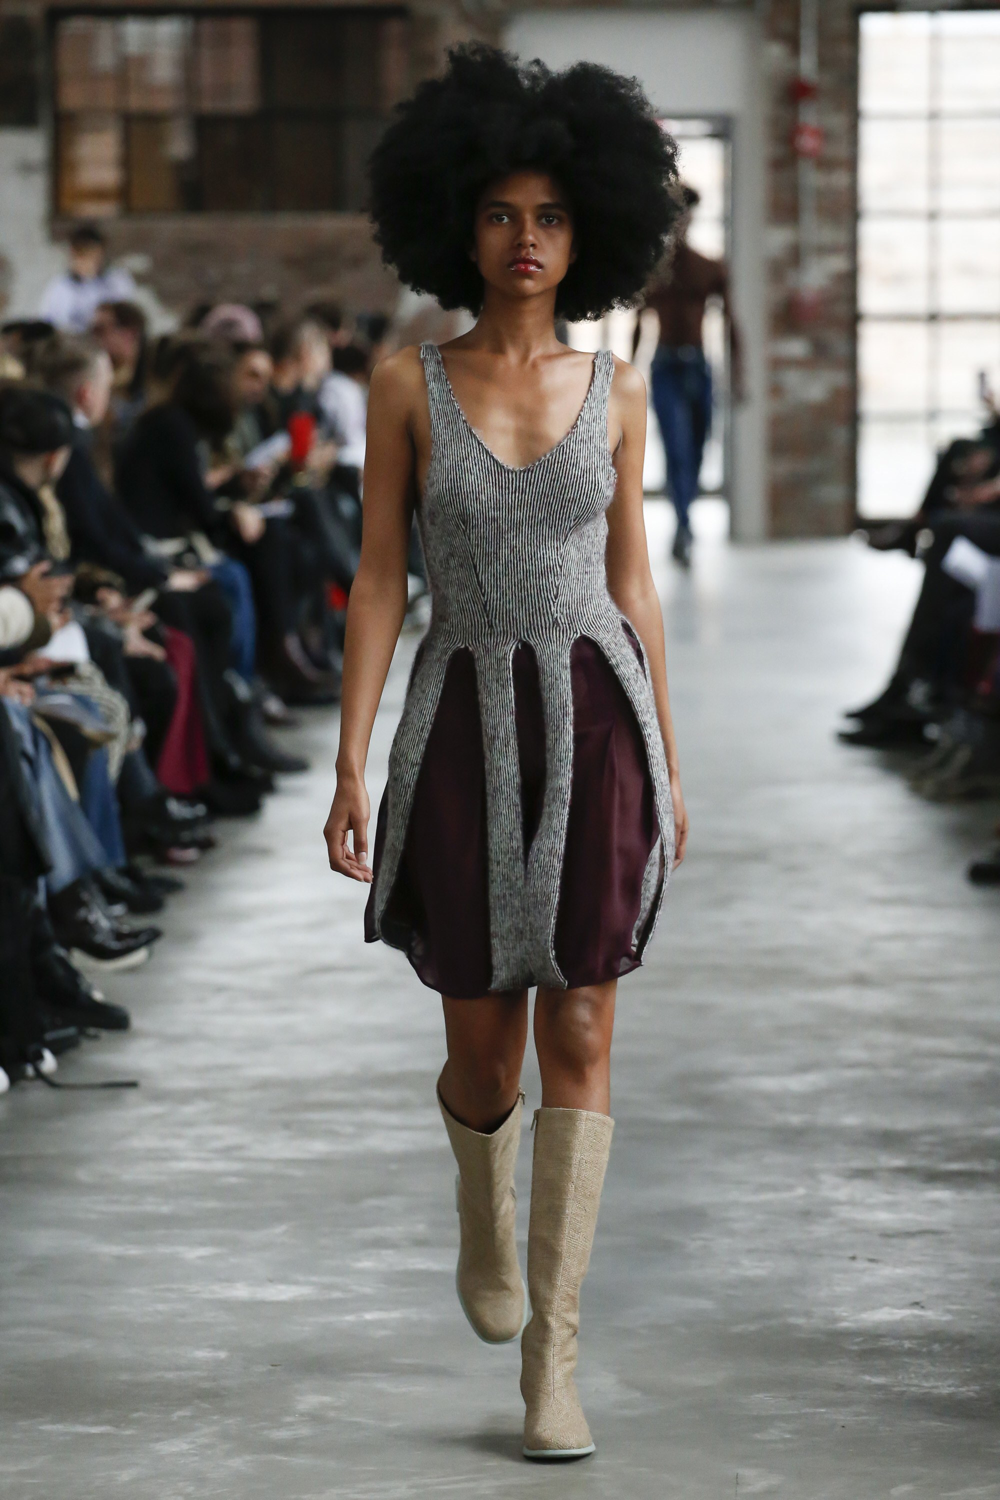 Eckhaus Latta AW18 (Photo: vogue.com)